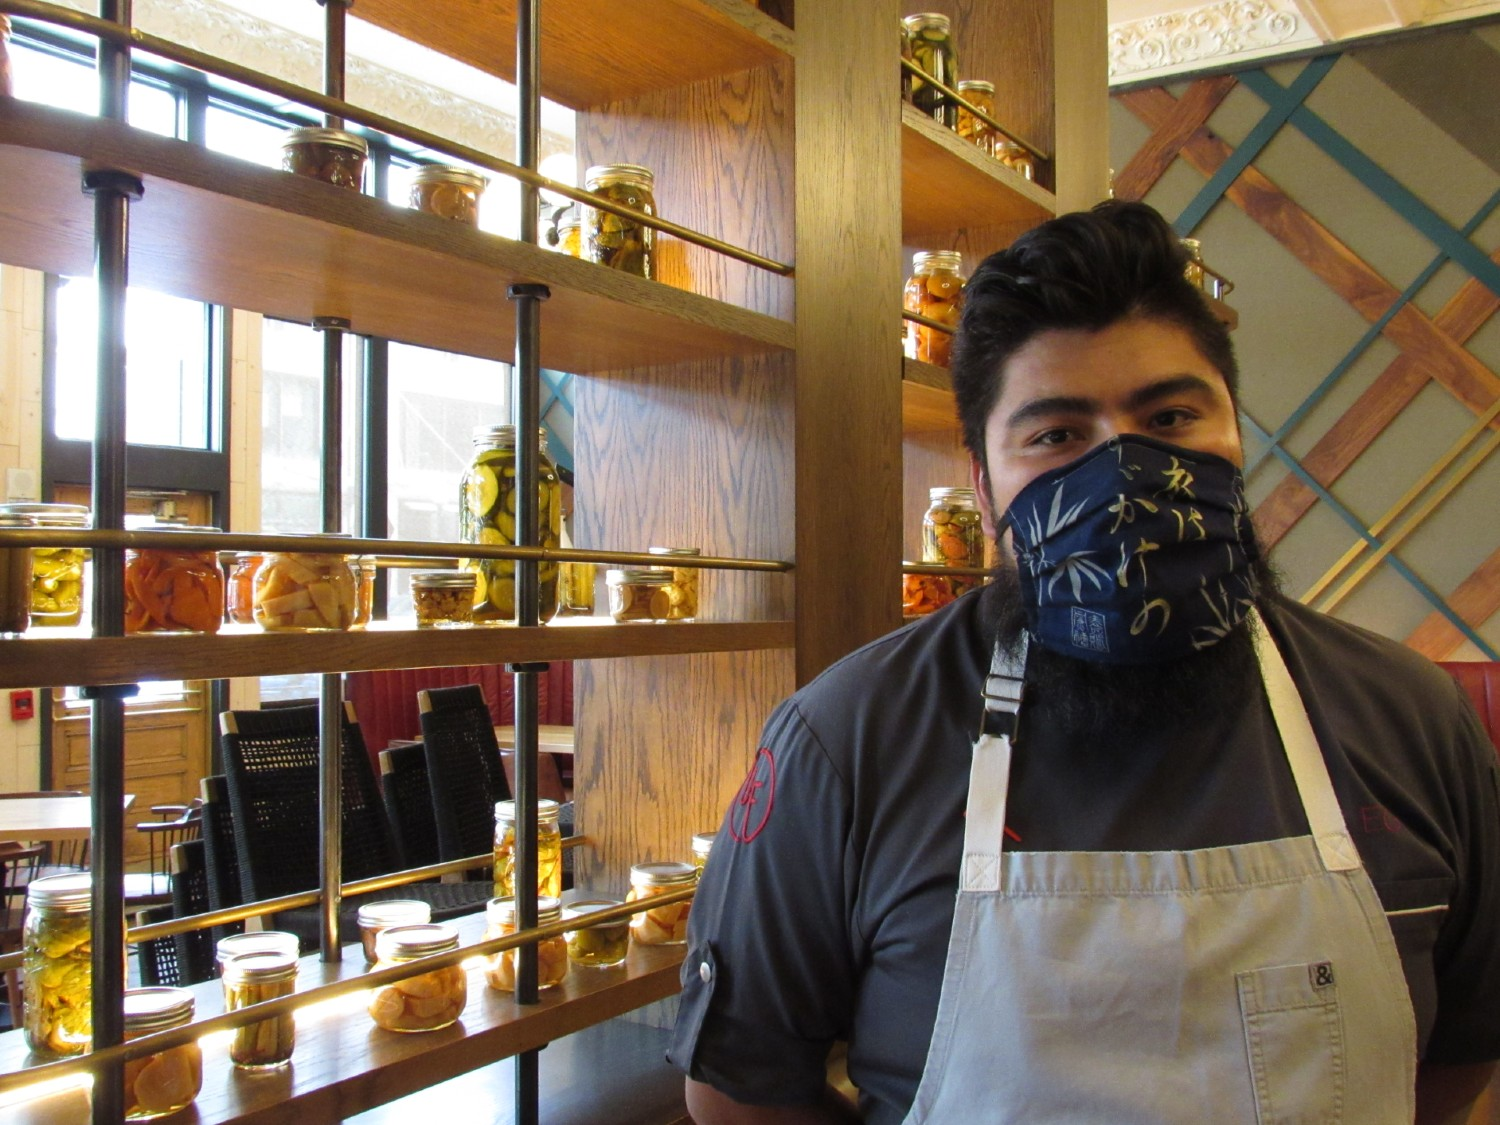 Erick Gamas, executive chef at the Urban Farmer, is training staff to wear masks, gloves and do temperature checks as they prepare to reopen. June 1, 2020. Credit: Jerd Smith